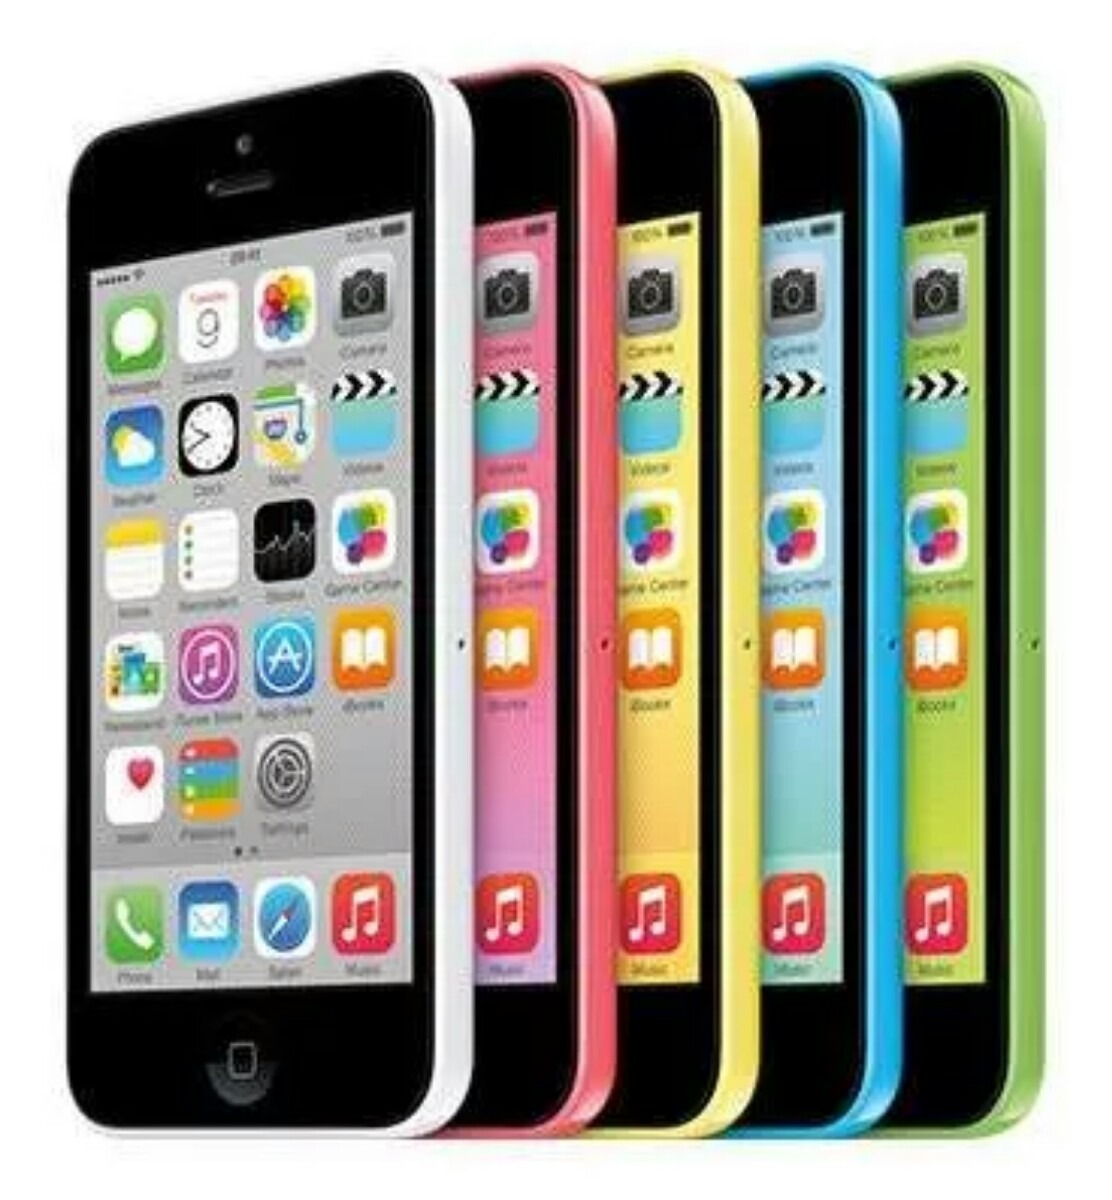 Iphone 5 S Libre Pantalla Display Lcd Iphone 5 5s 5c Original 329 00 En